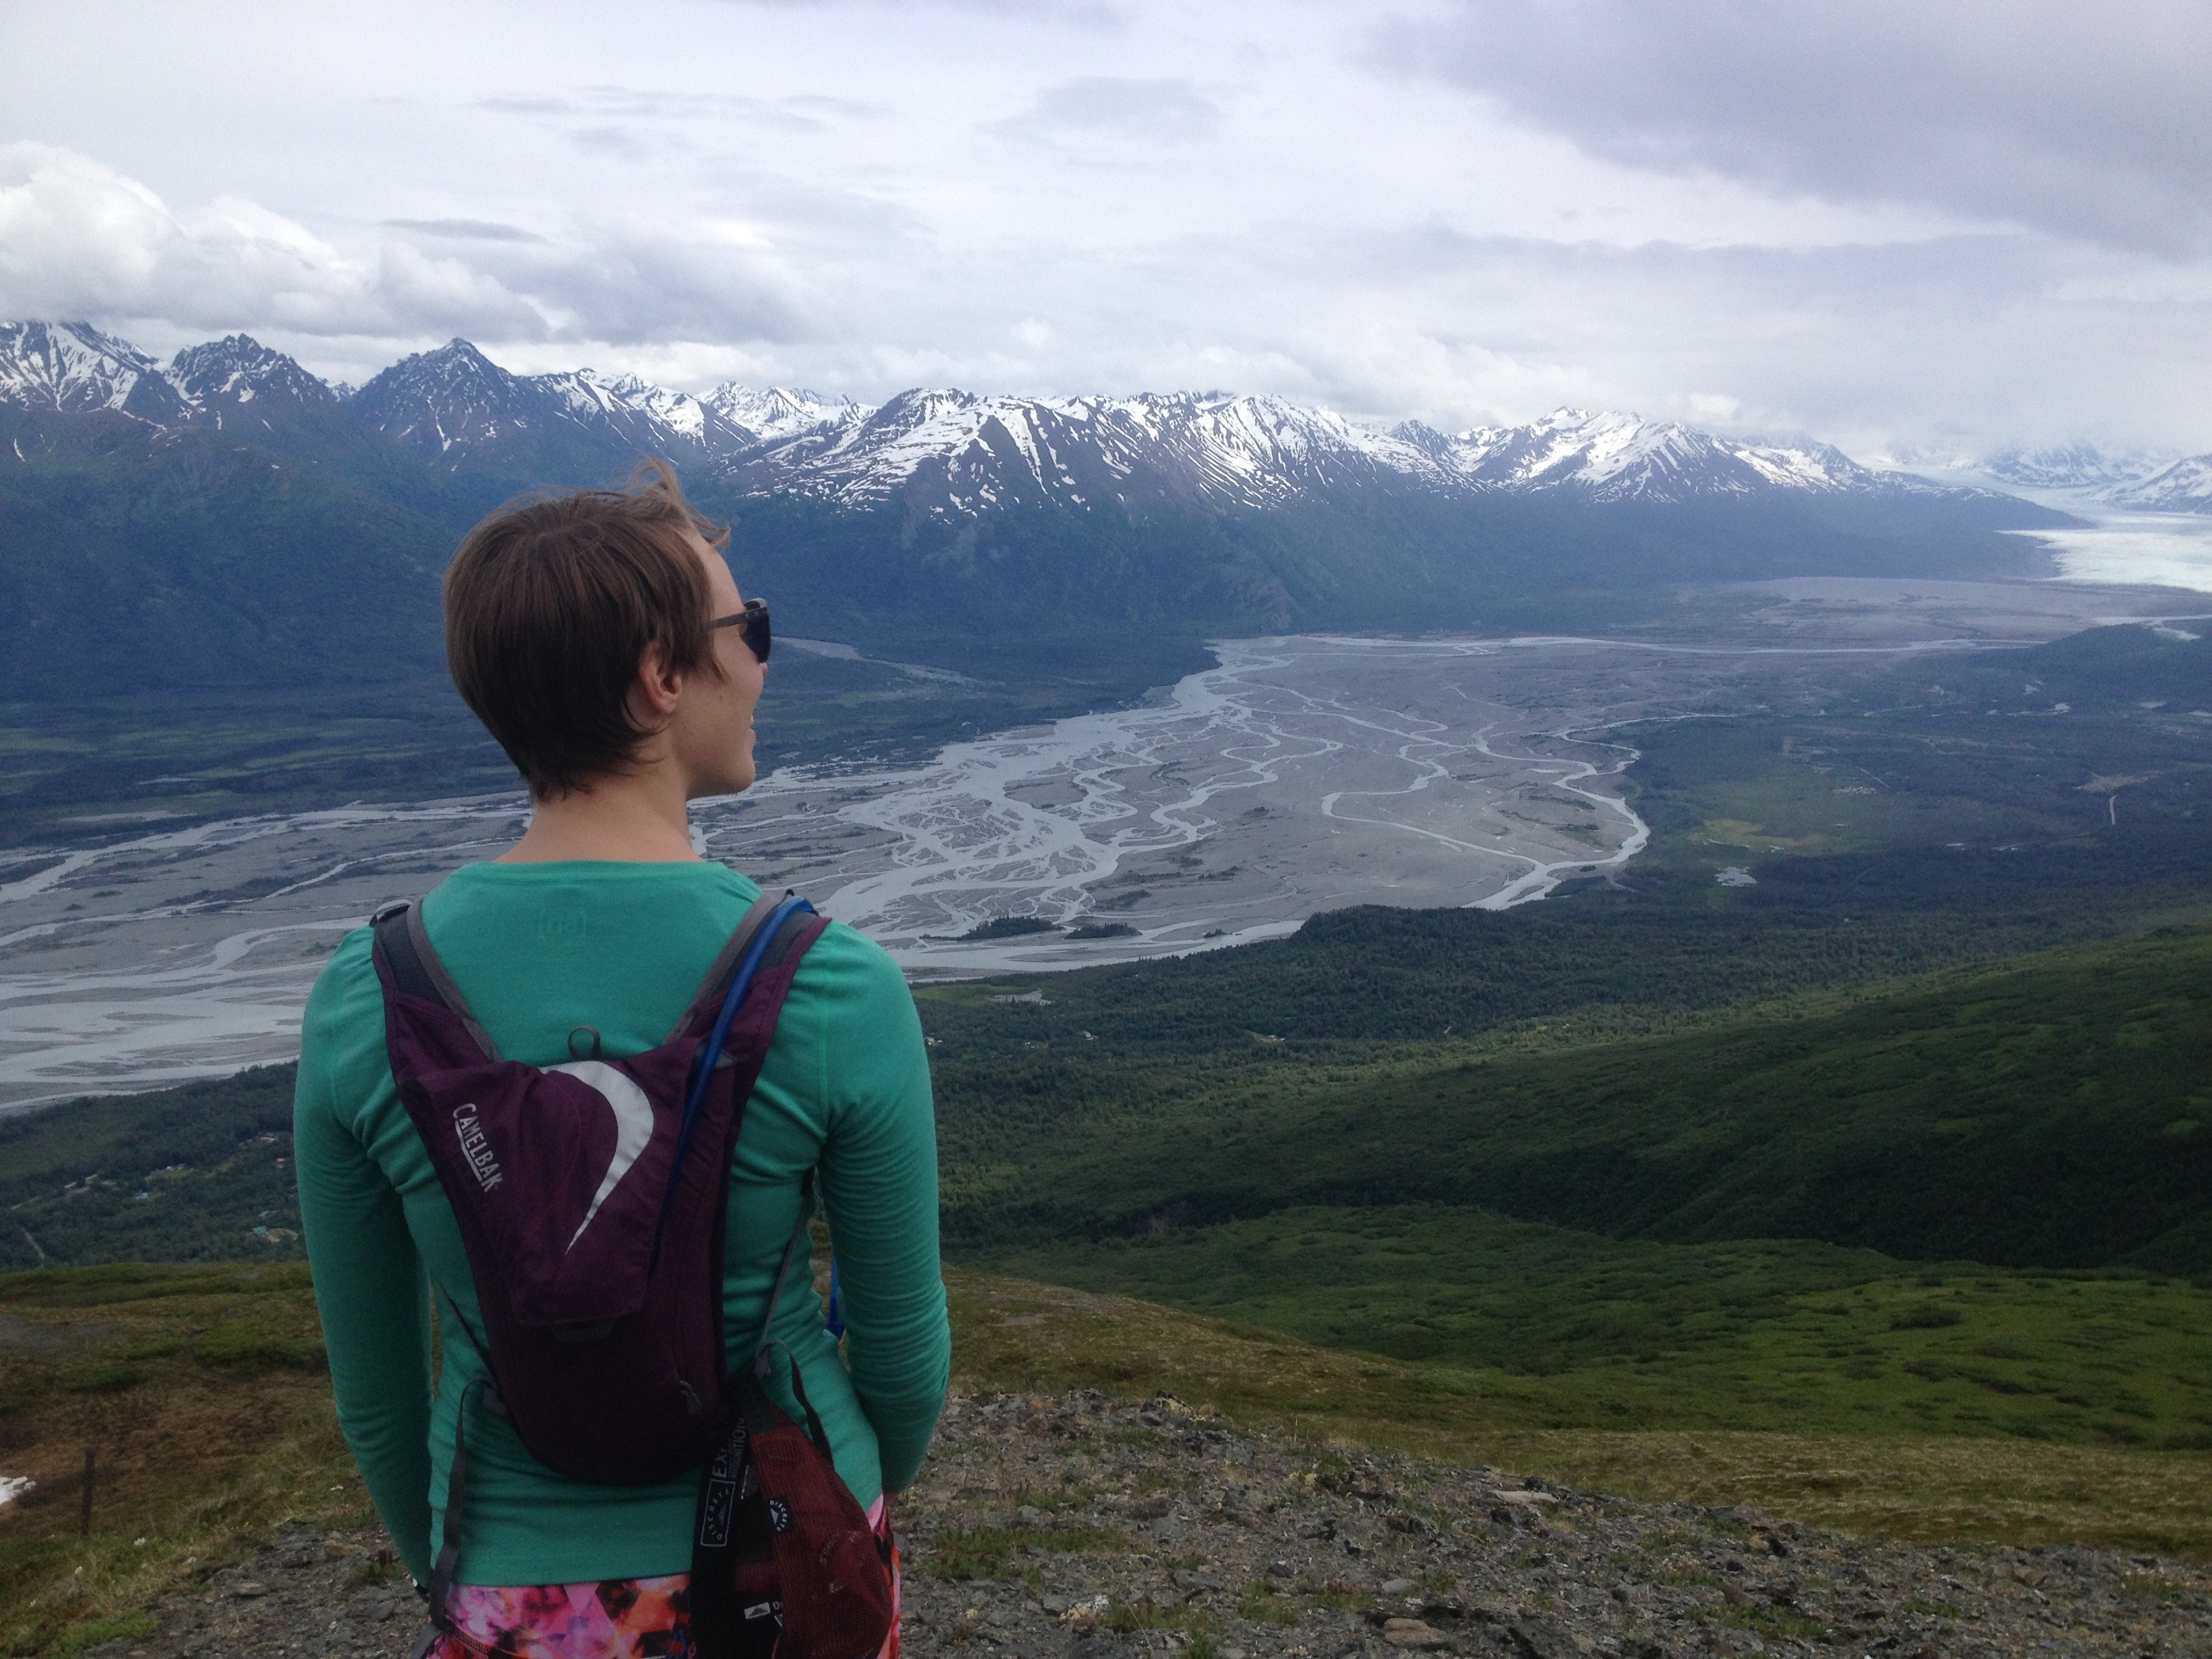 Day hiking in Alaska